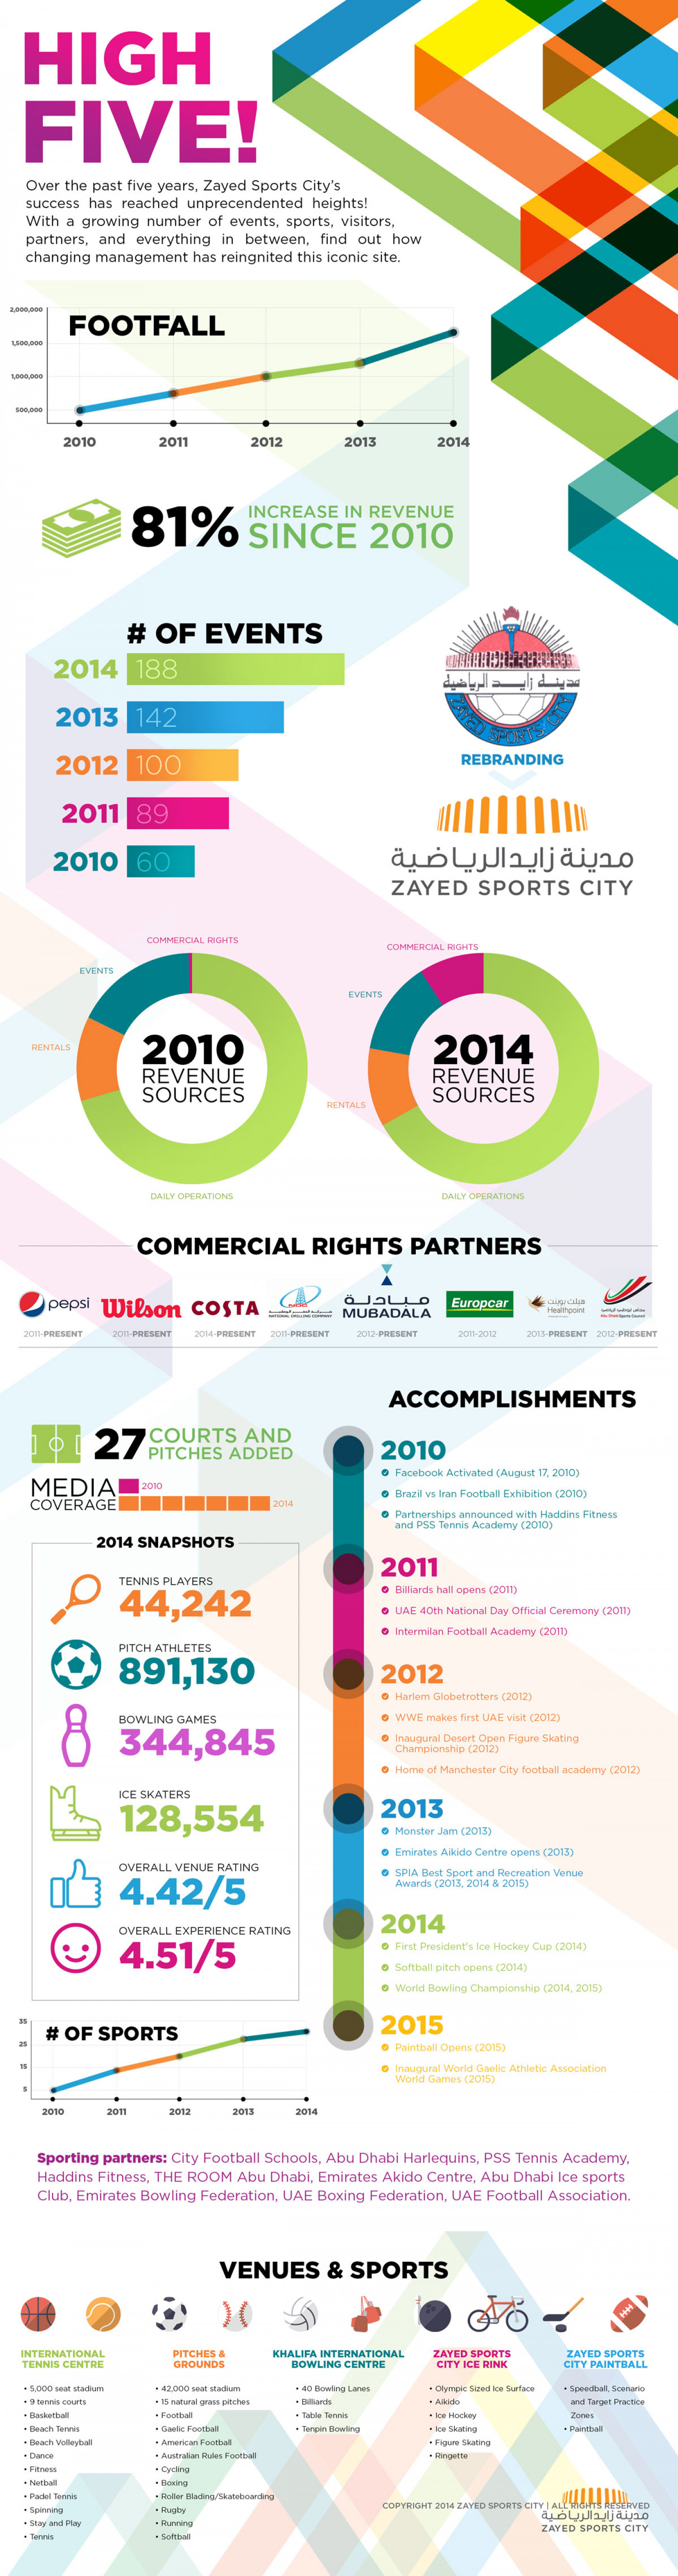 High Five Infographic